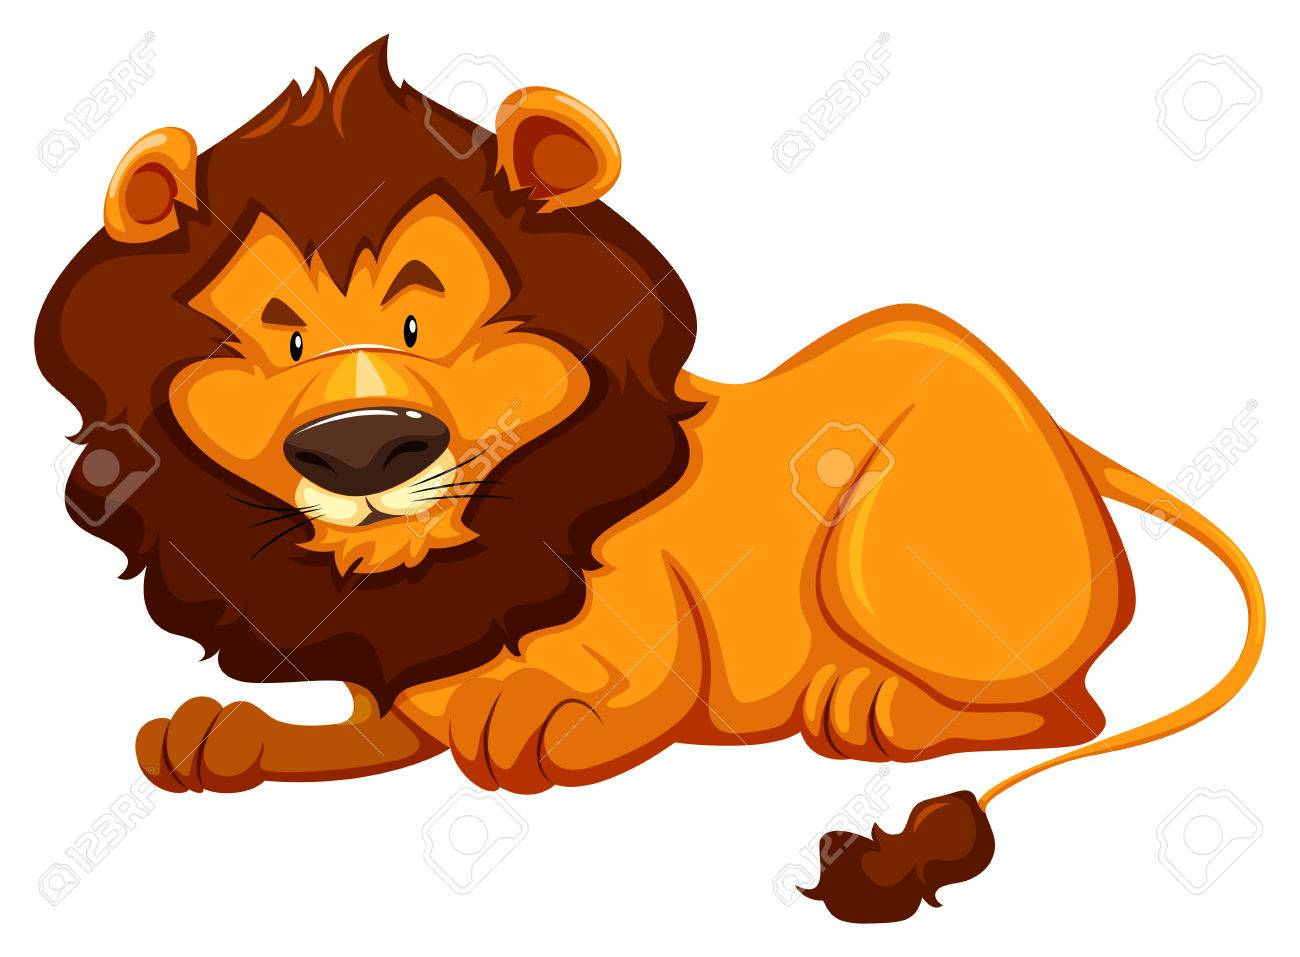 hight resolution of sitting lion on white background stock vector 39163442